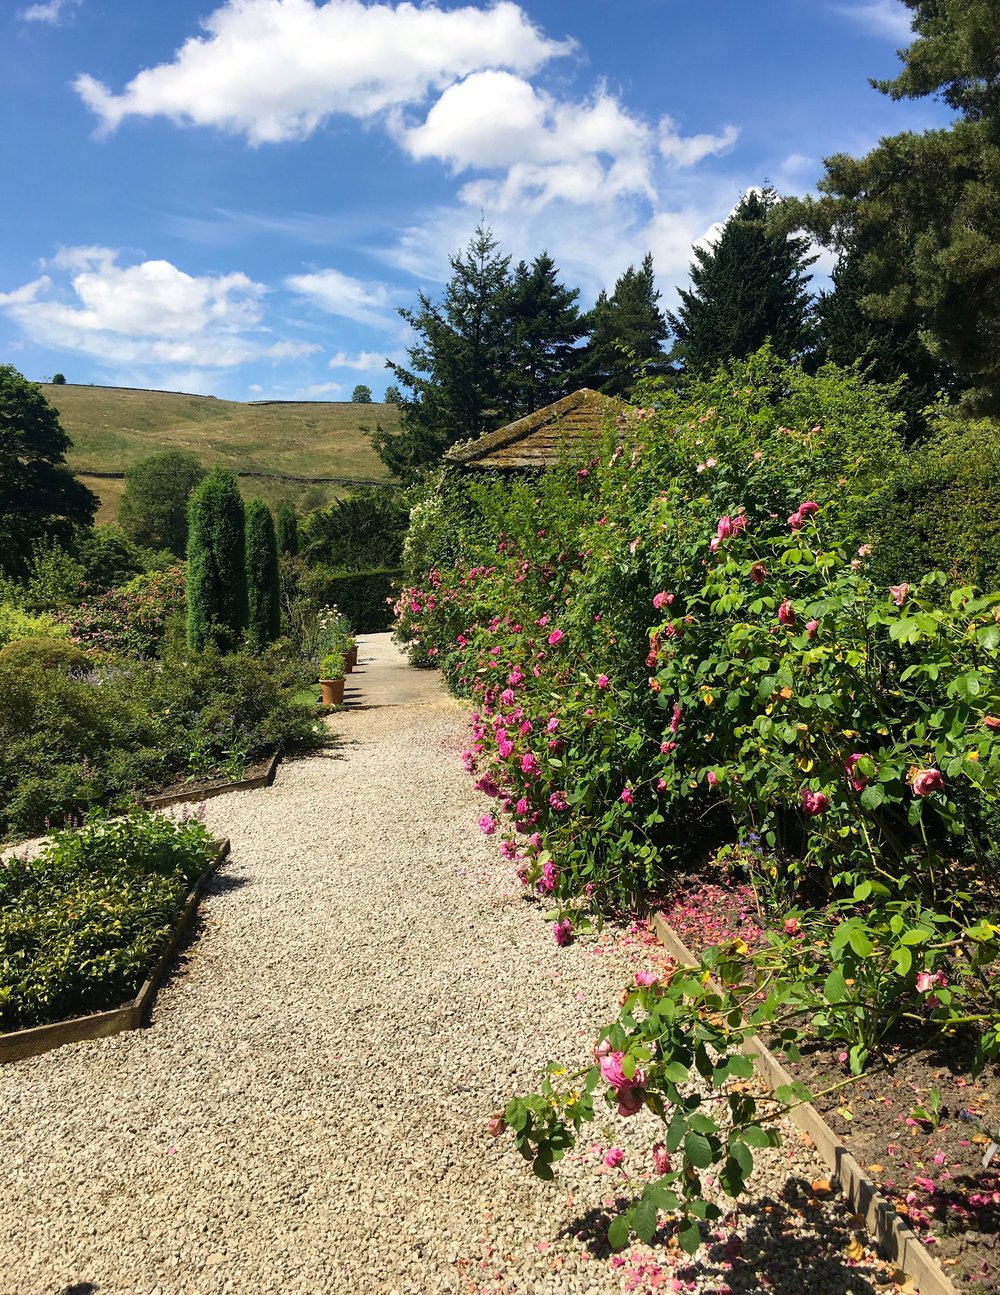 A gravel path filled with scent and blue skies at Parcevall Hall in Yorkshire